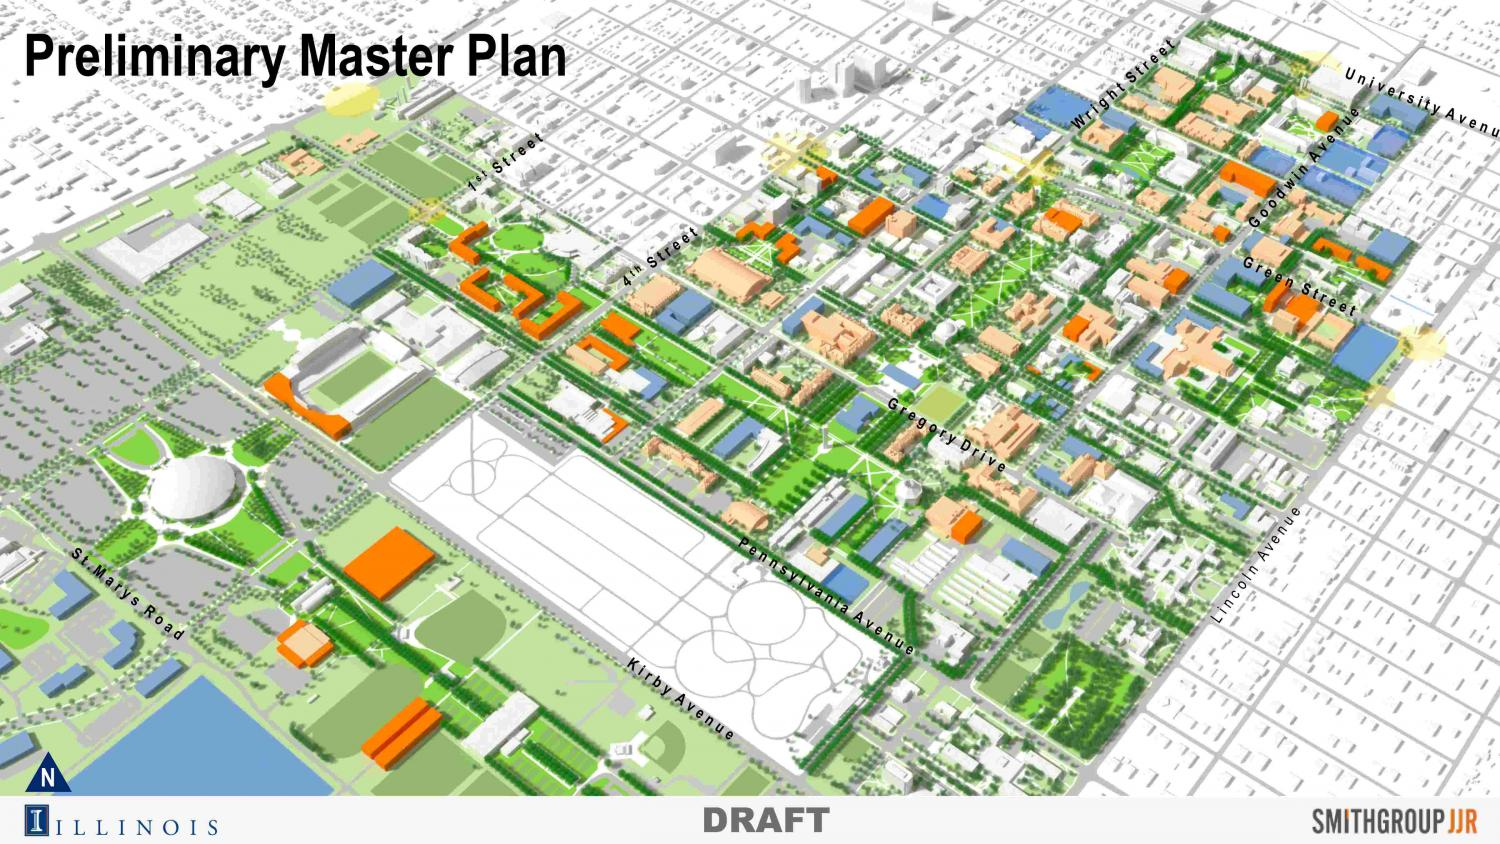 The University is currently working on plans to develop and renovate campus infrastructure and land in the coming decade. Along with renovations of buildings around the Main Quad, the plan proposes an Illini Union South, located on the South Quad.